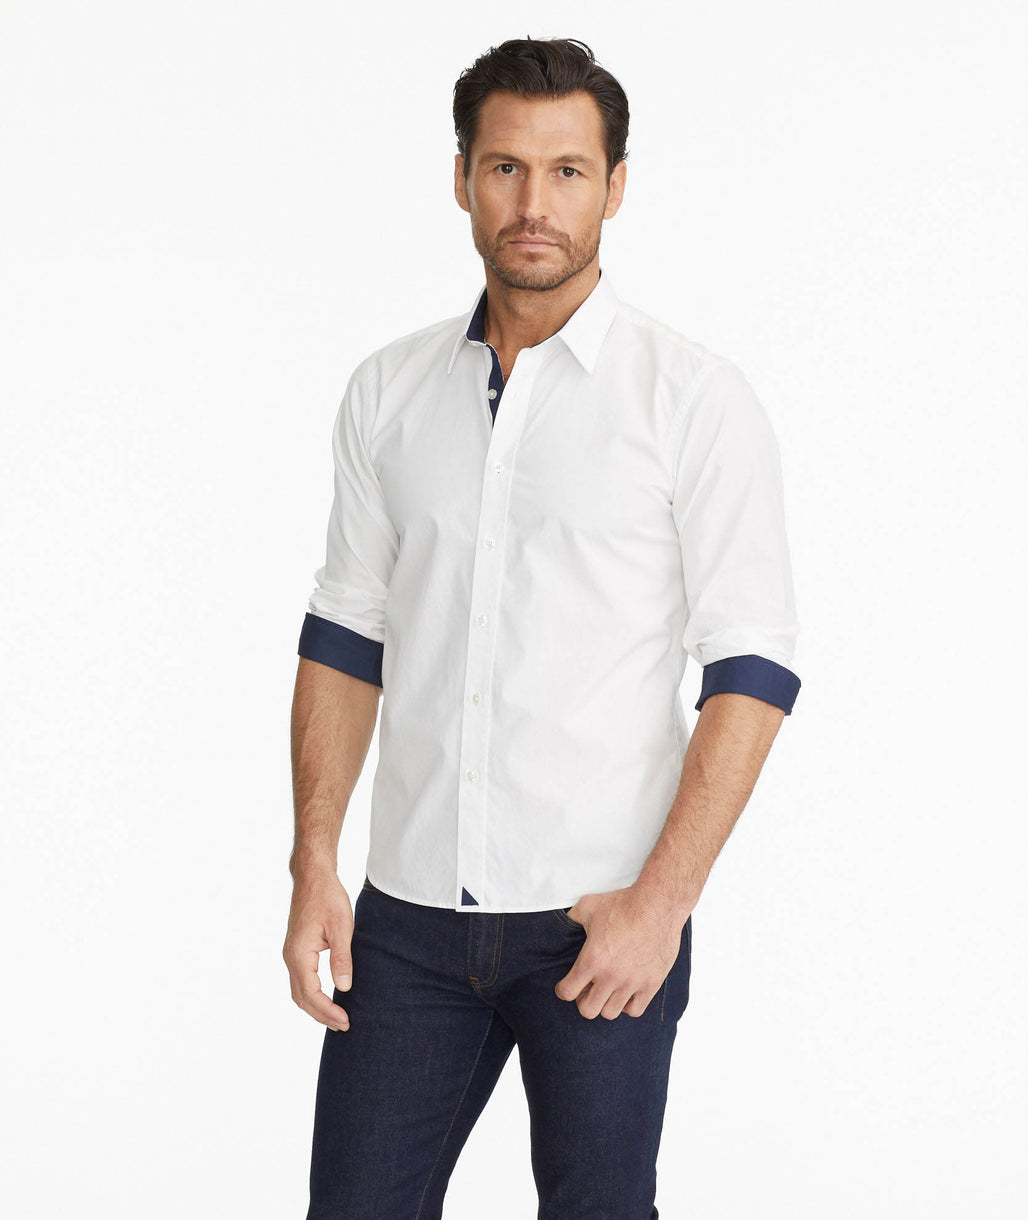 Model wearing a Wrinkle-Free Las Cases Special Shirt